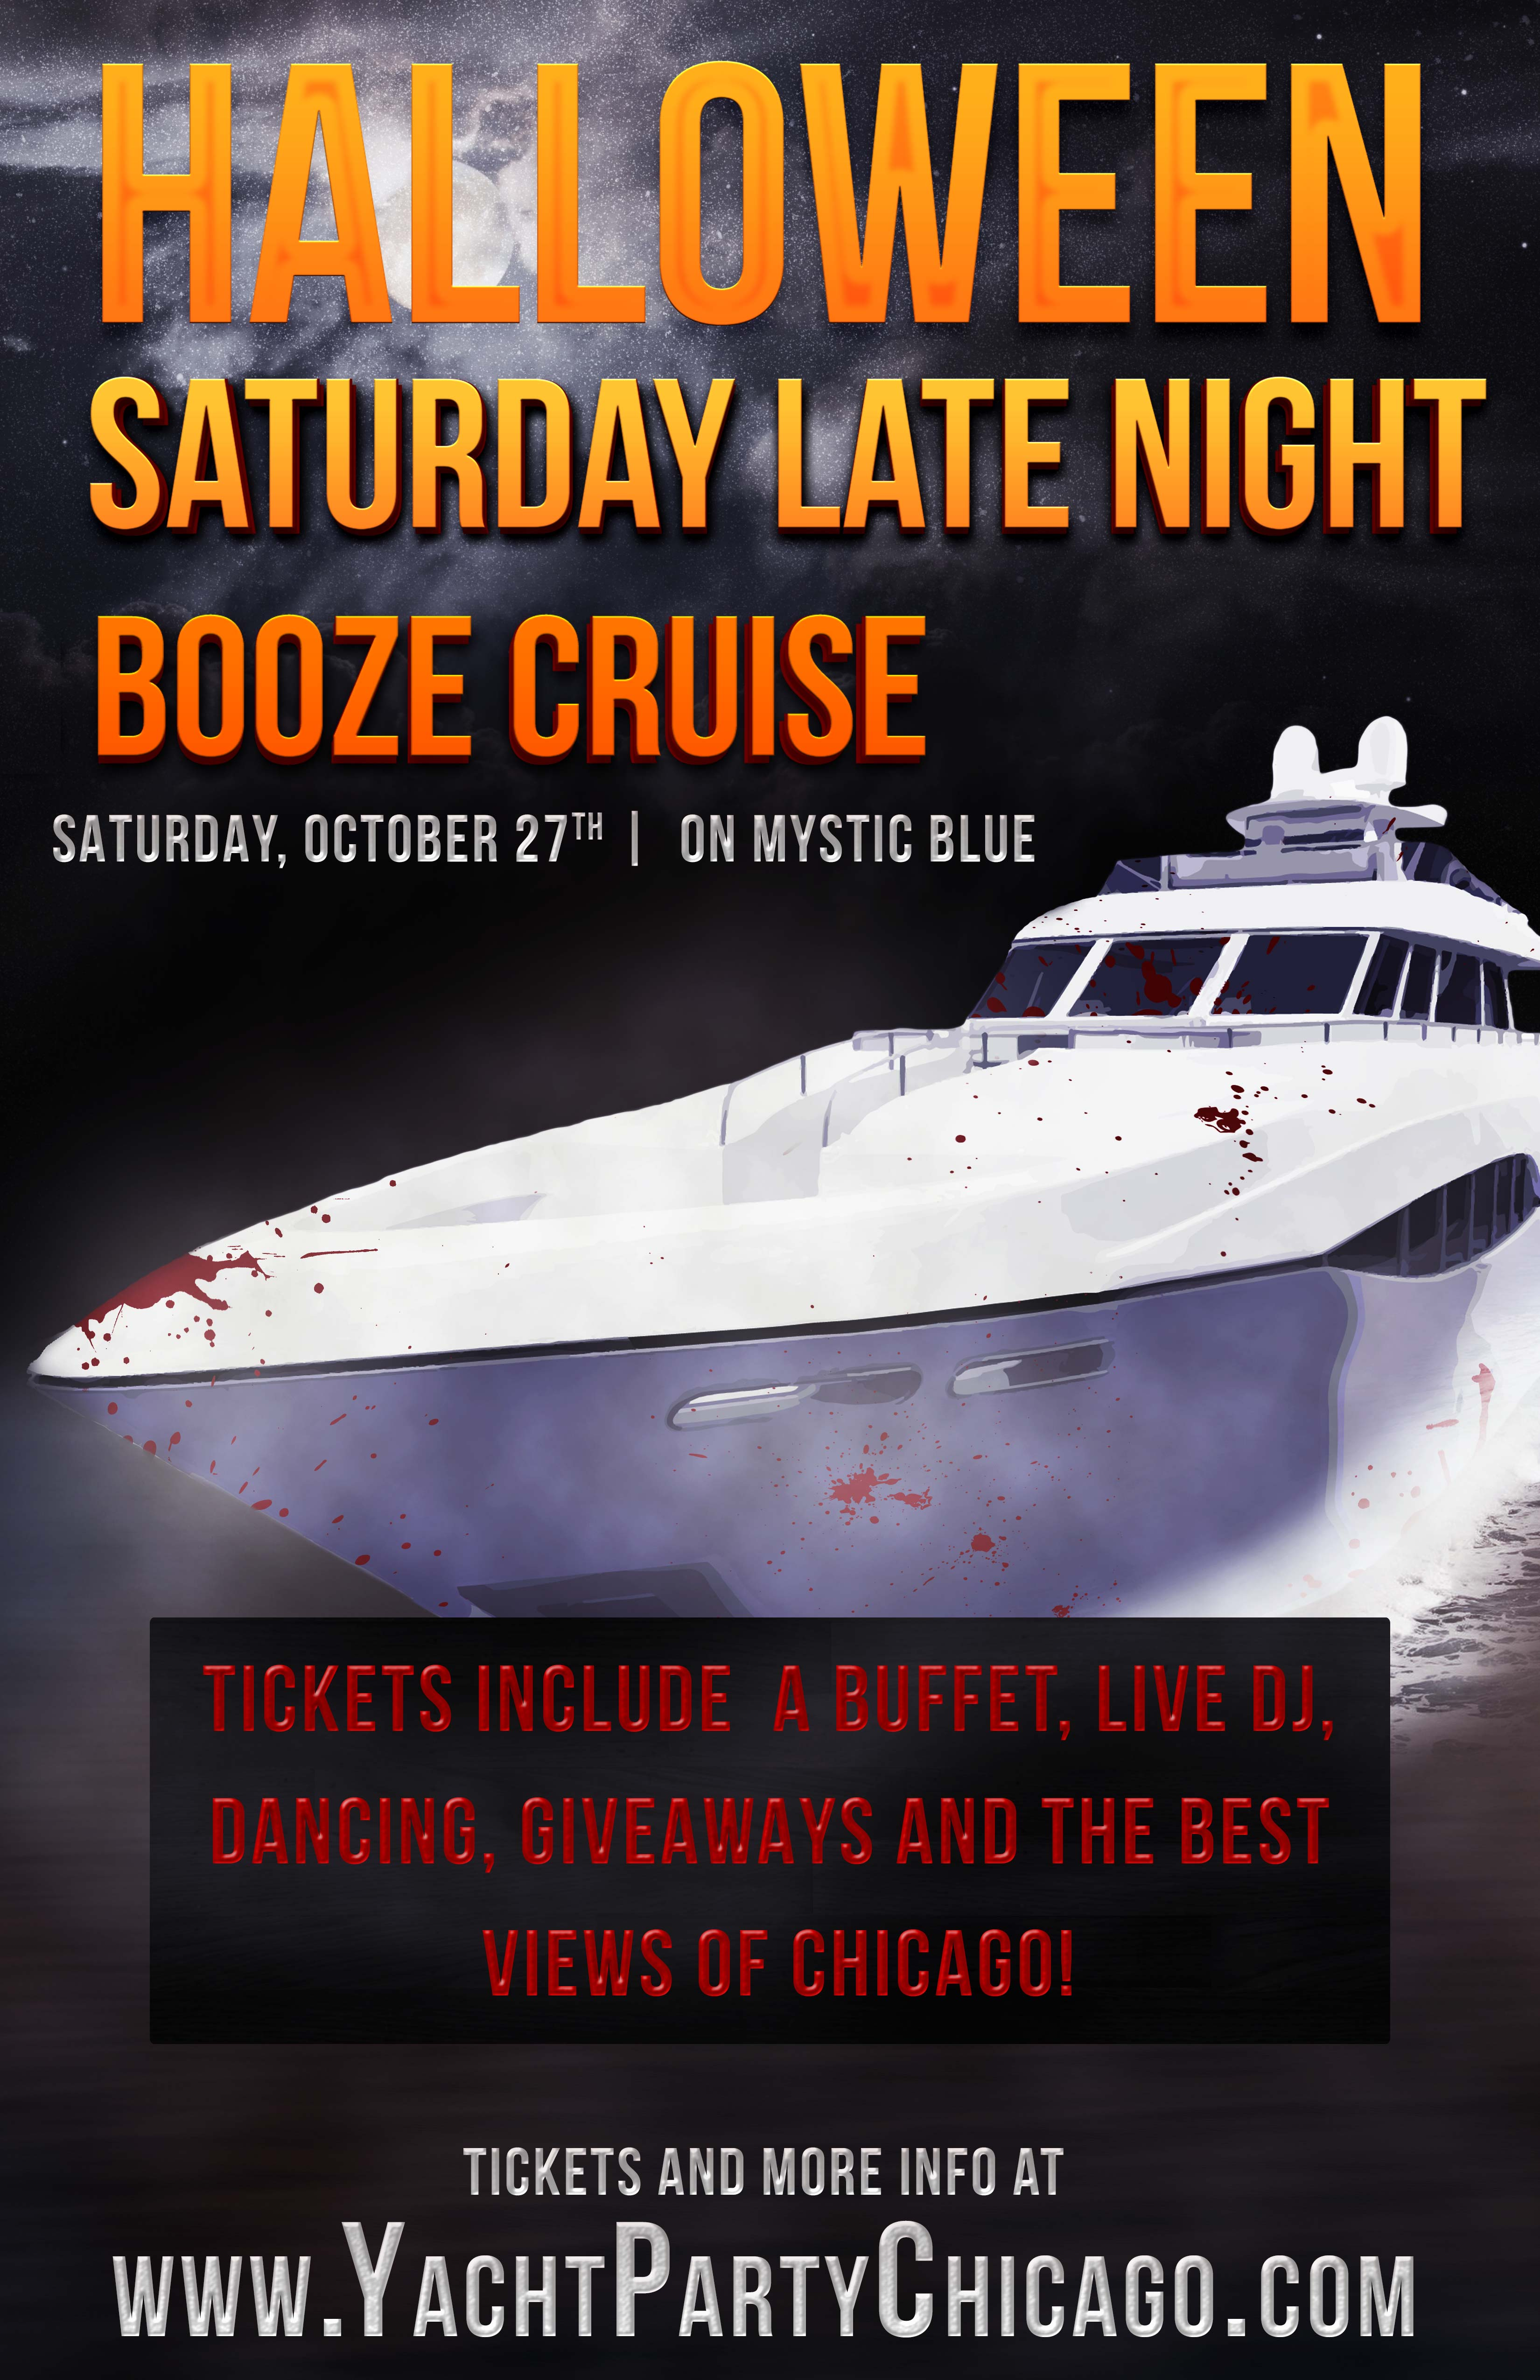 Halloween Saturday Late Night Booze Cruise Party - Tickets include a Live DJ, Dancing, Giveaways, and the best views of Chicago!